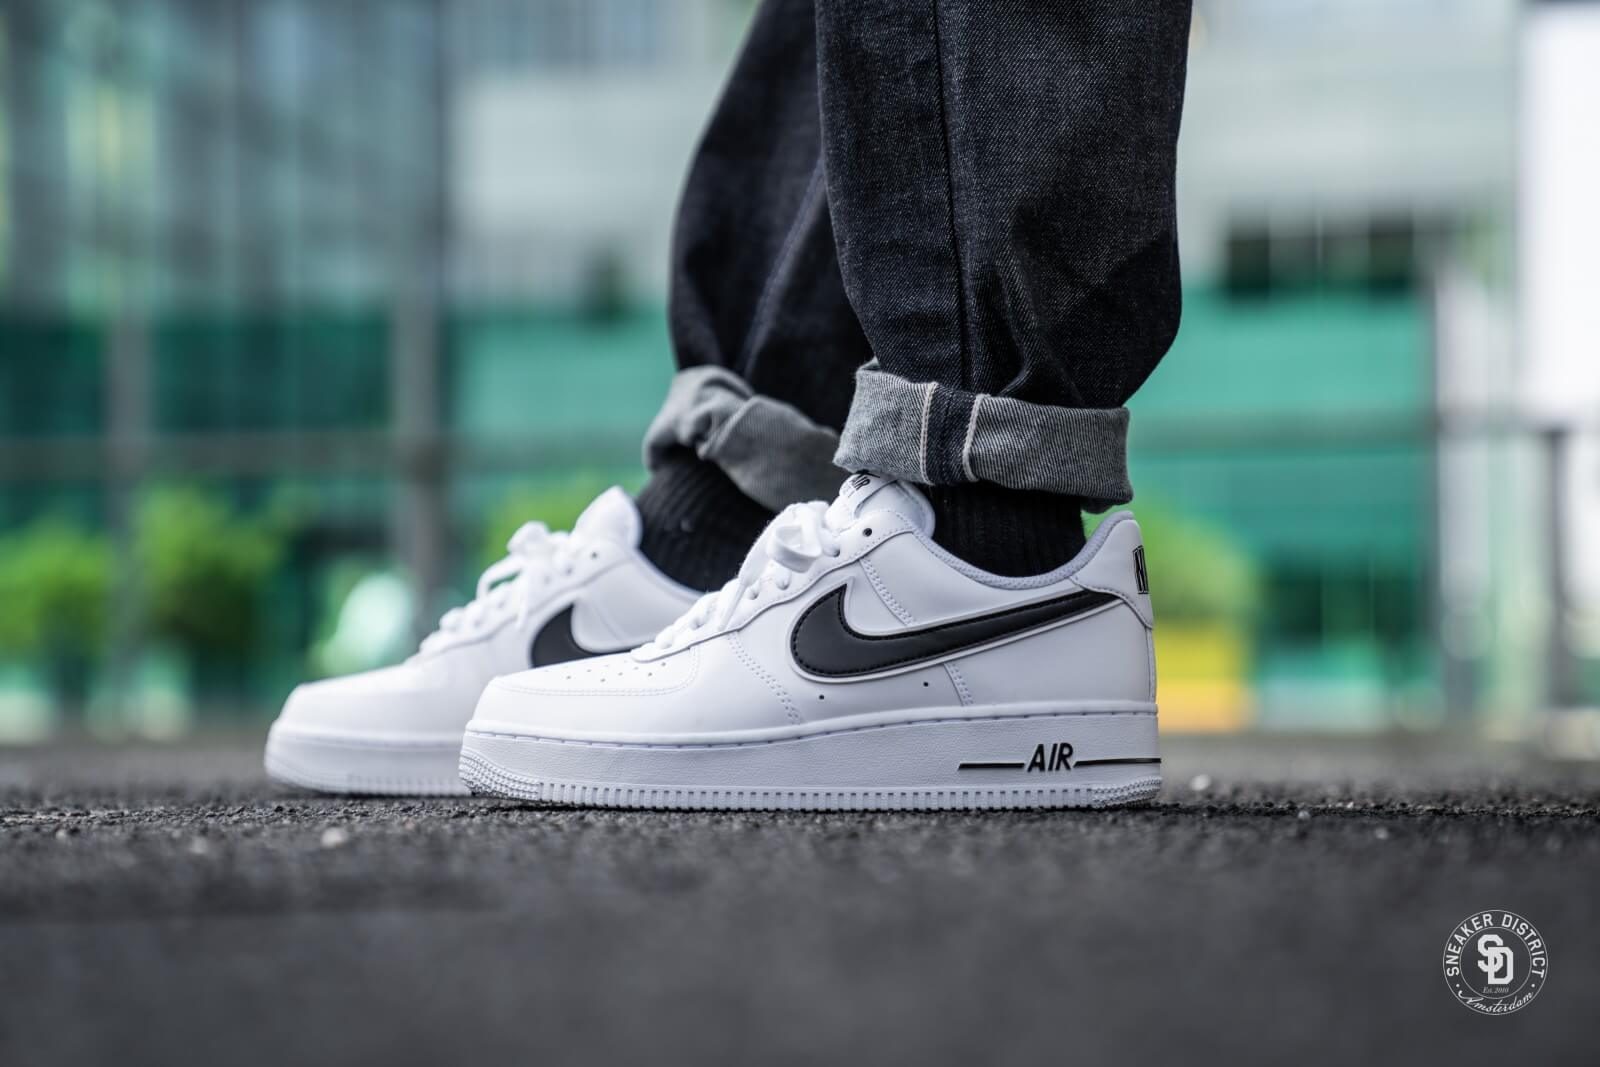 nike air force 1 white and black low